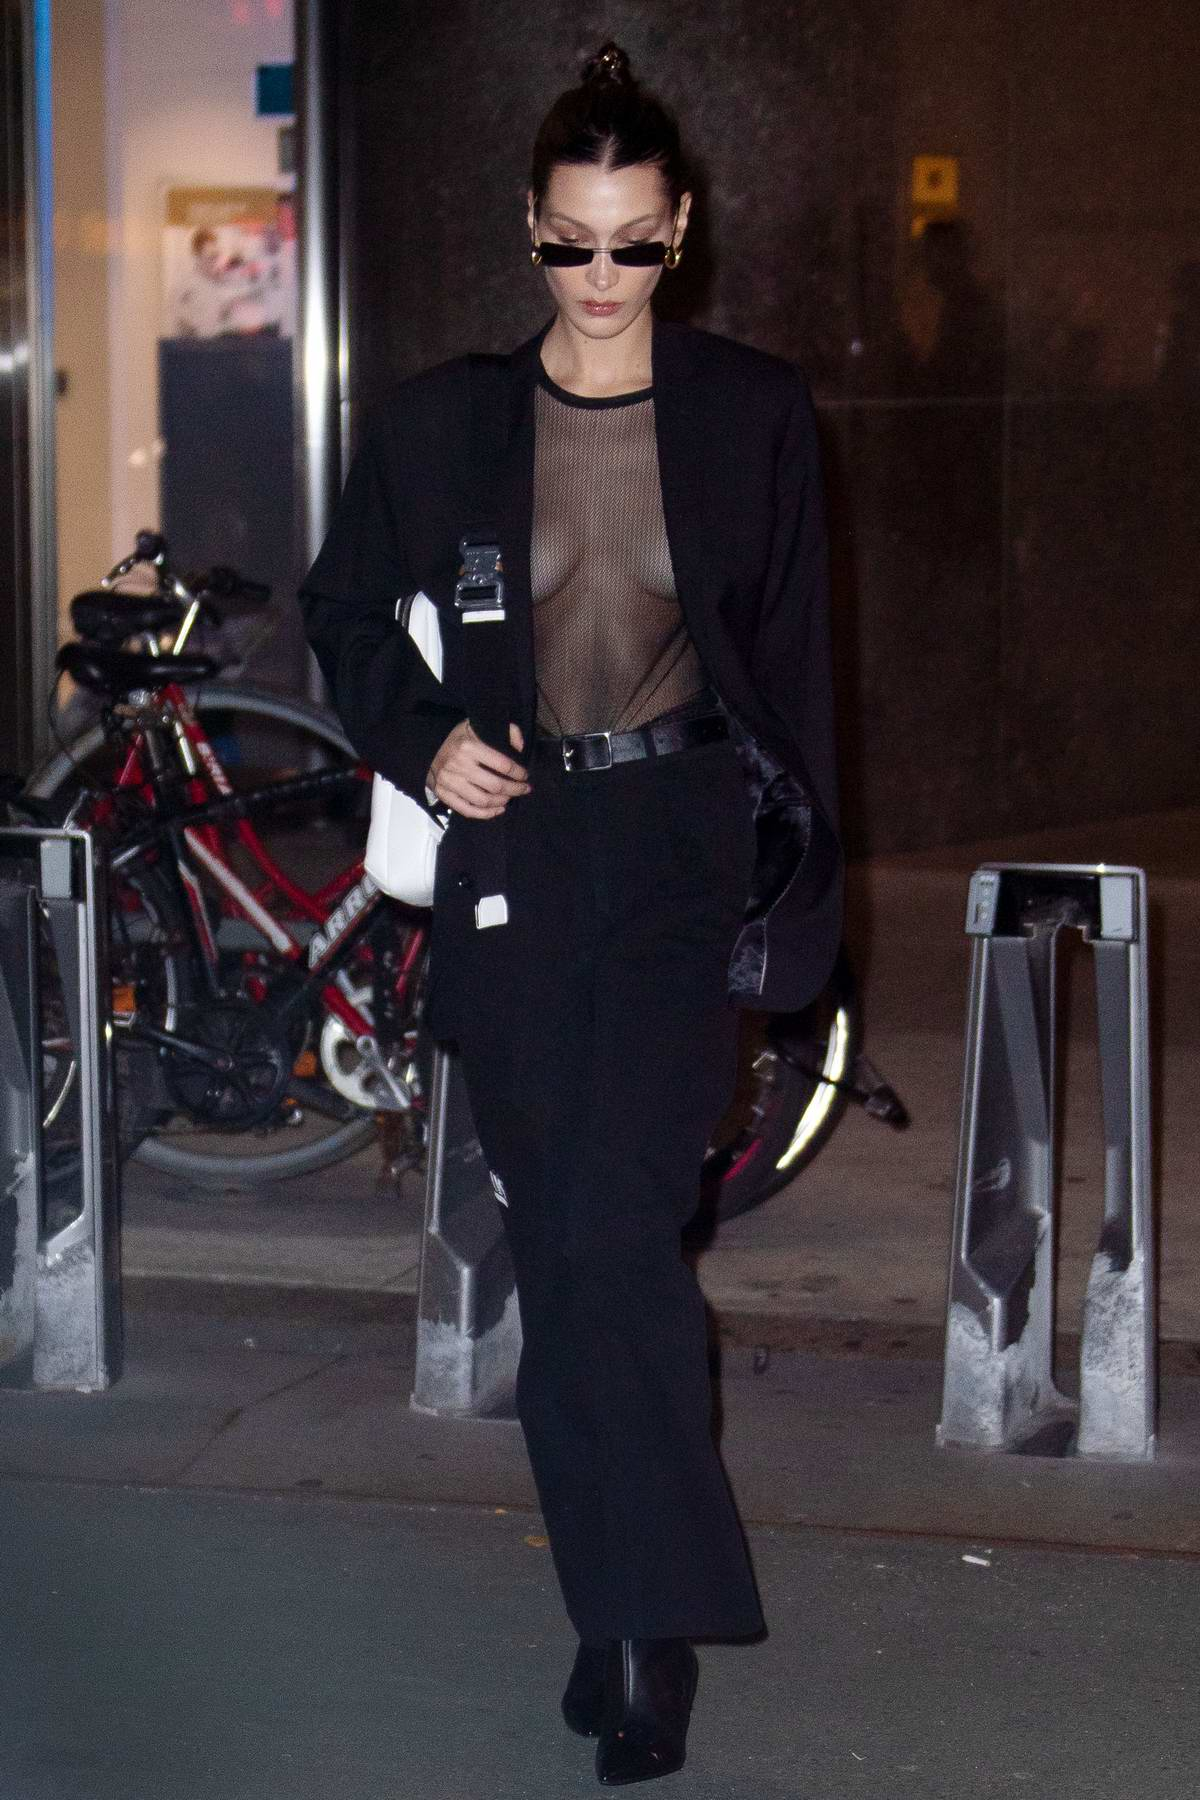 Bella Hadid wears a black blazer over a sheer top as she leaves Victoria's Secret offices in New York City